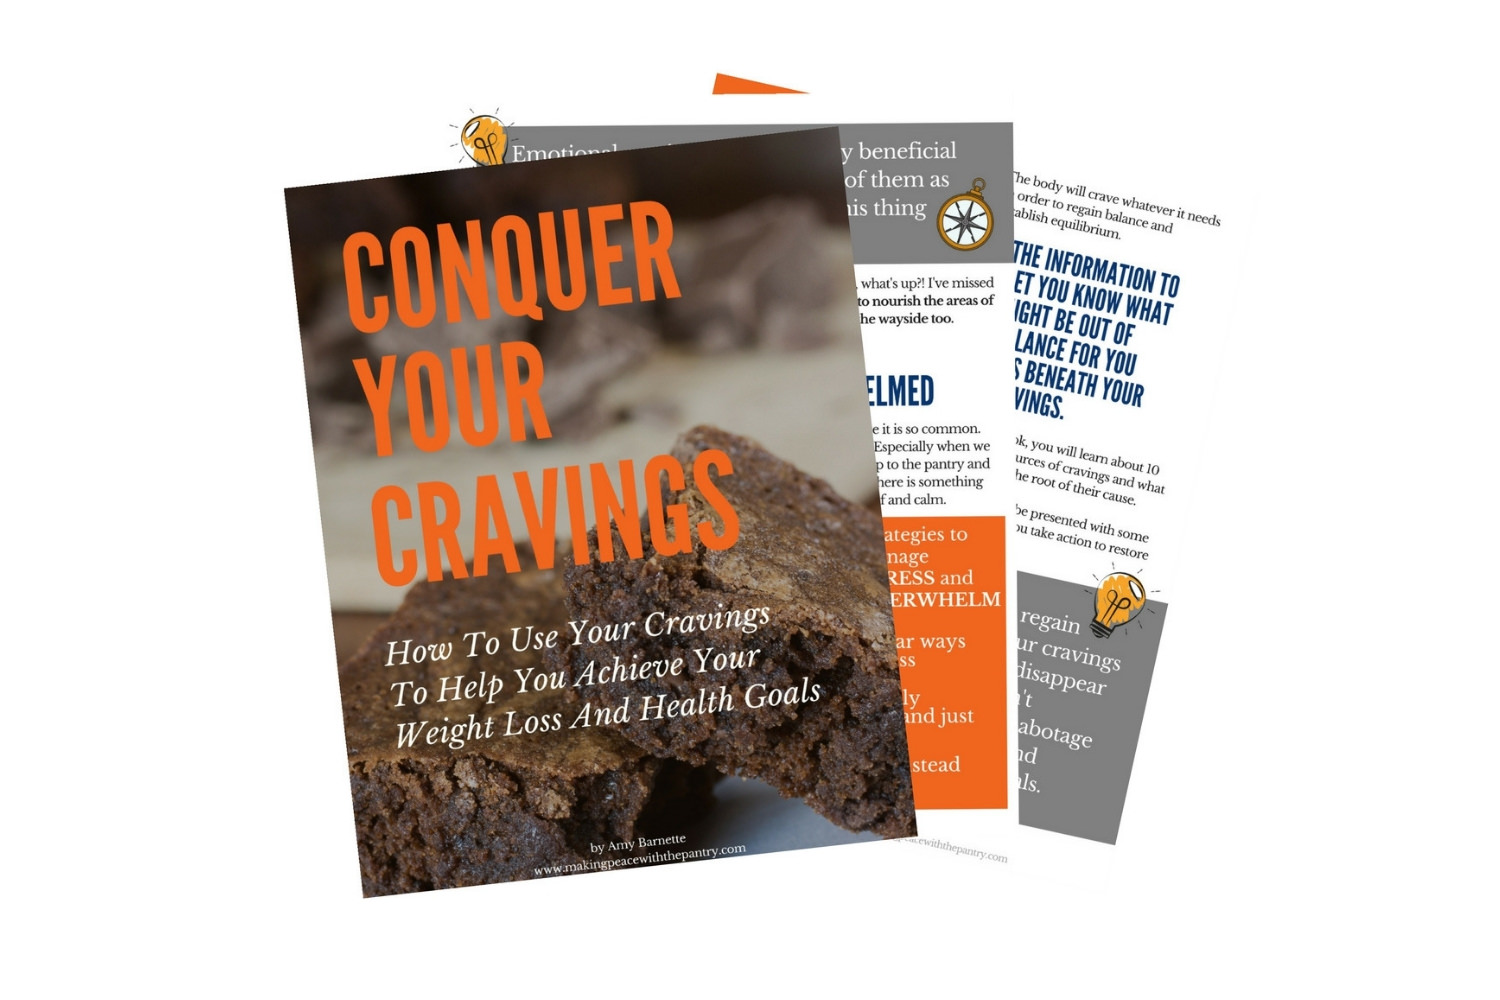 conquer-your-cravings-ebook-amy-barnette.jpg